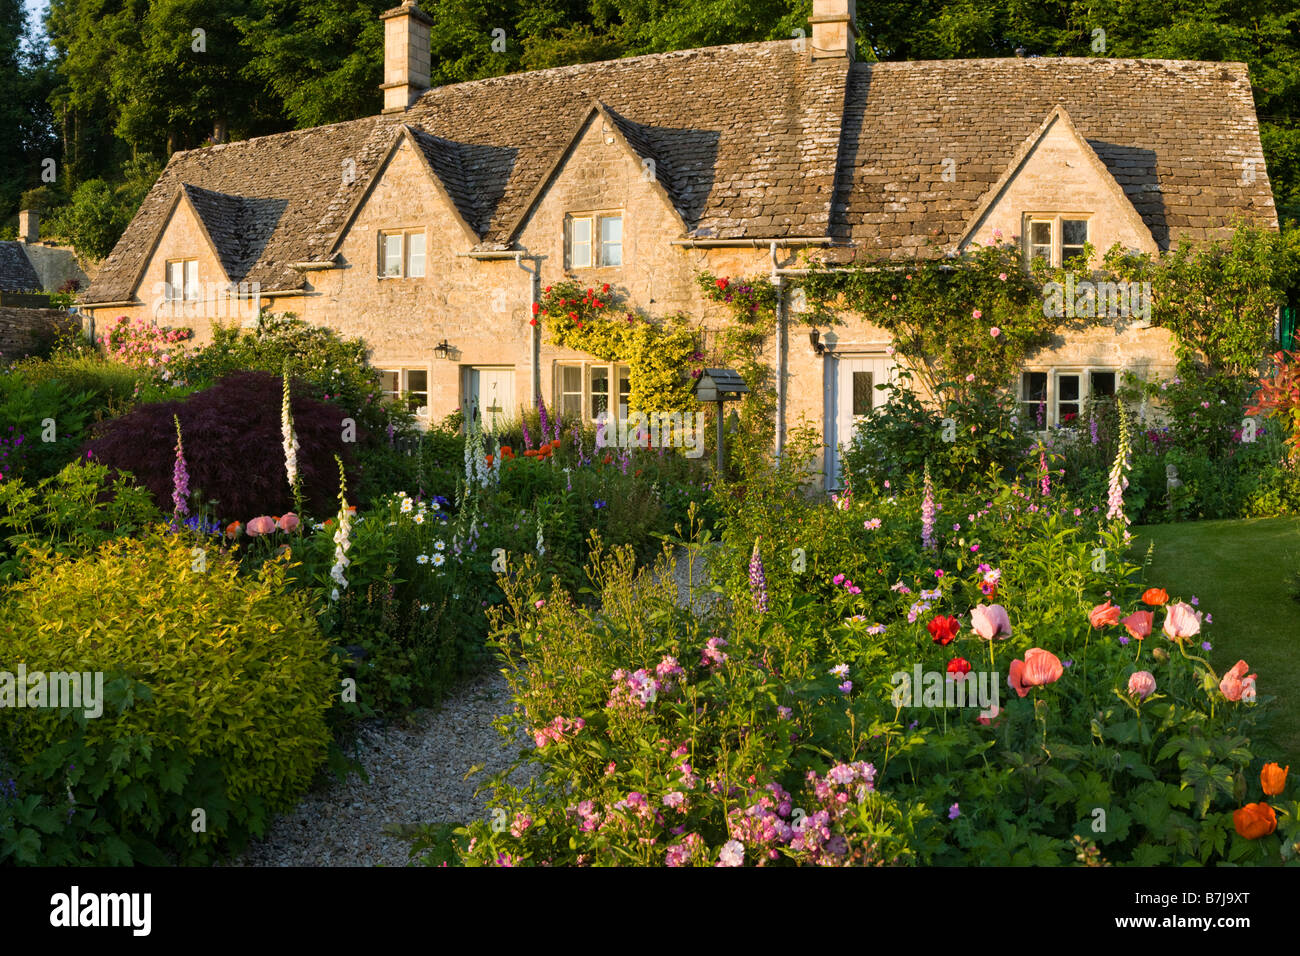 The last of the evening sunlight falling on cottage gardens in the Cotswold village of Bibury, Gloucestershire - Stock Image